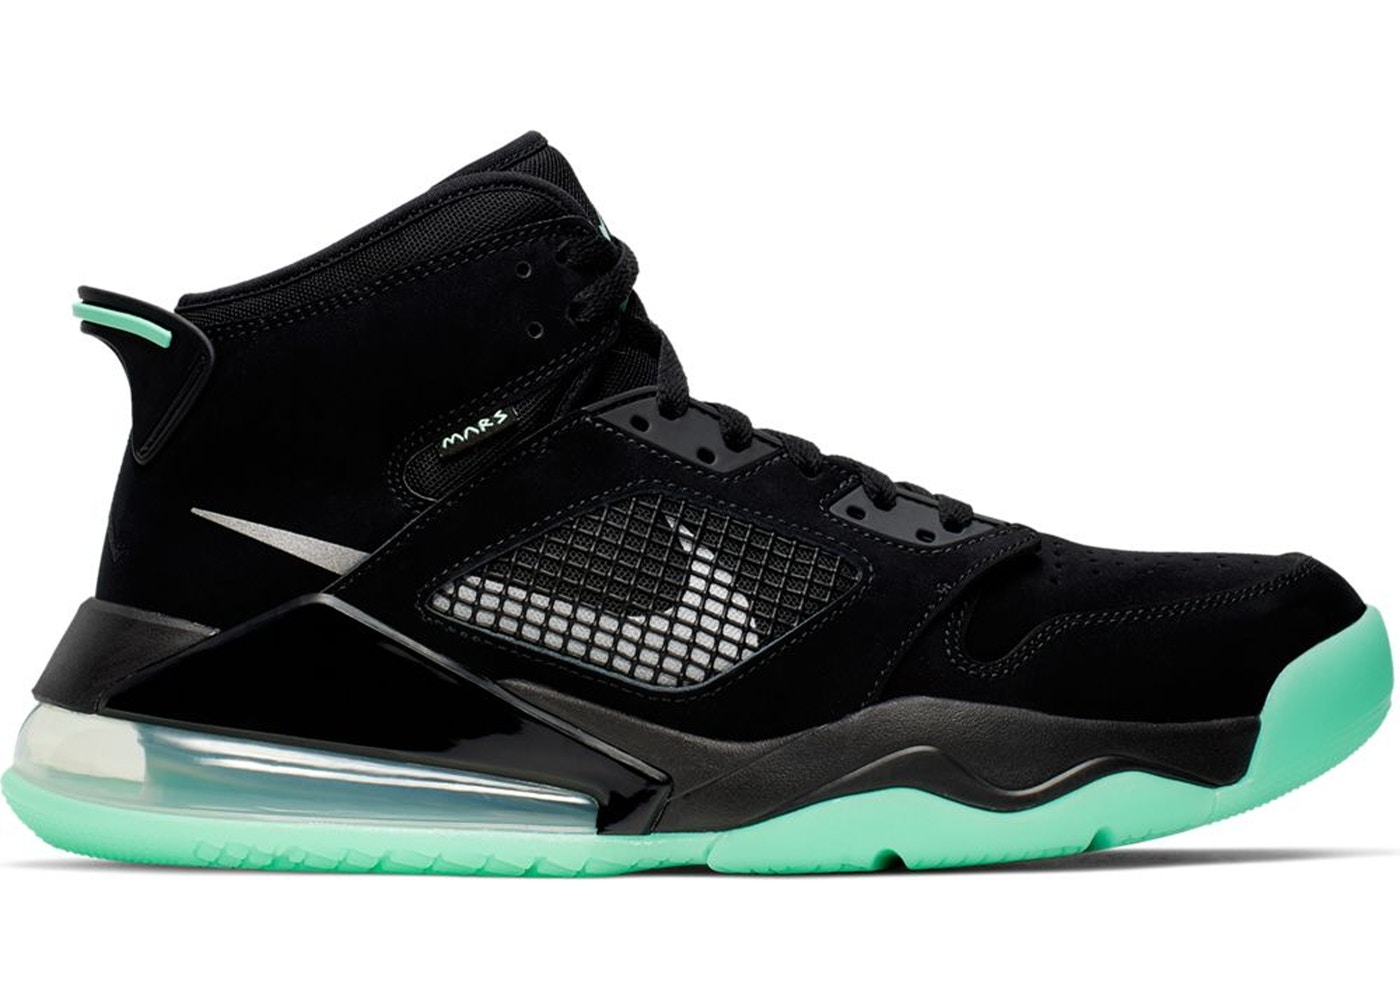 cheap for discount 0c53d c3f7e Jordan Mars 270 Black Green Glow